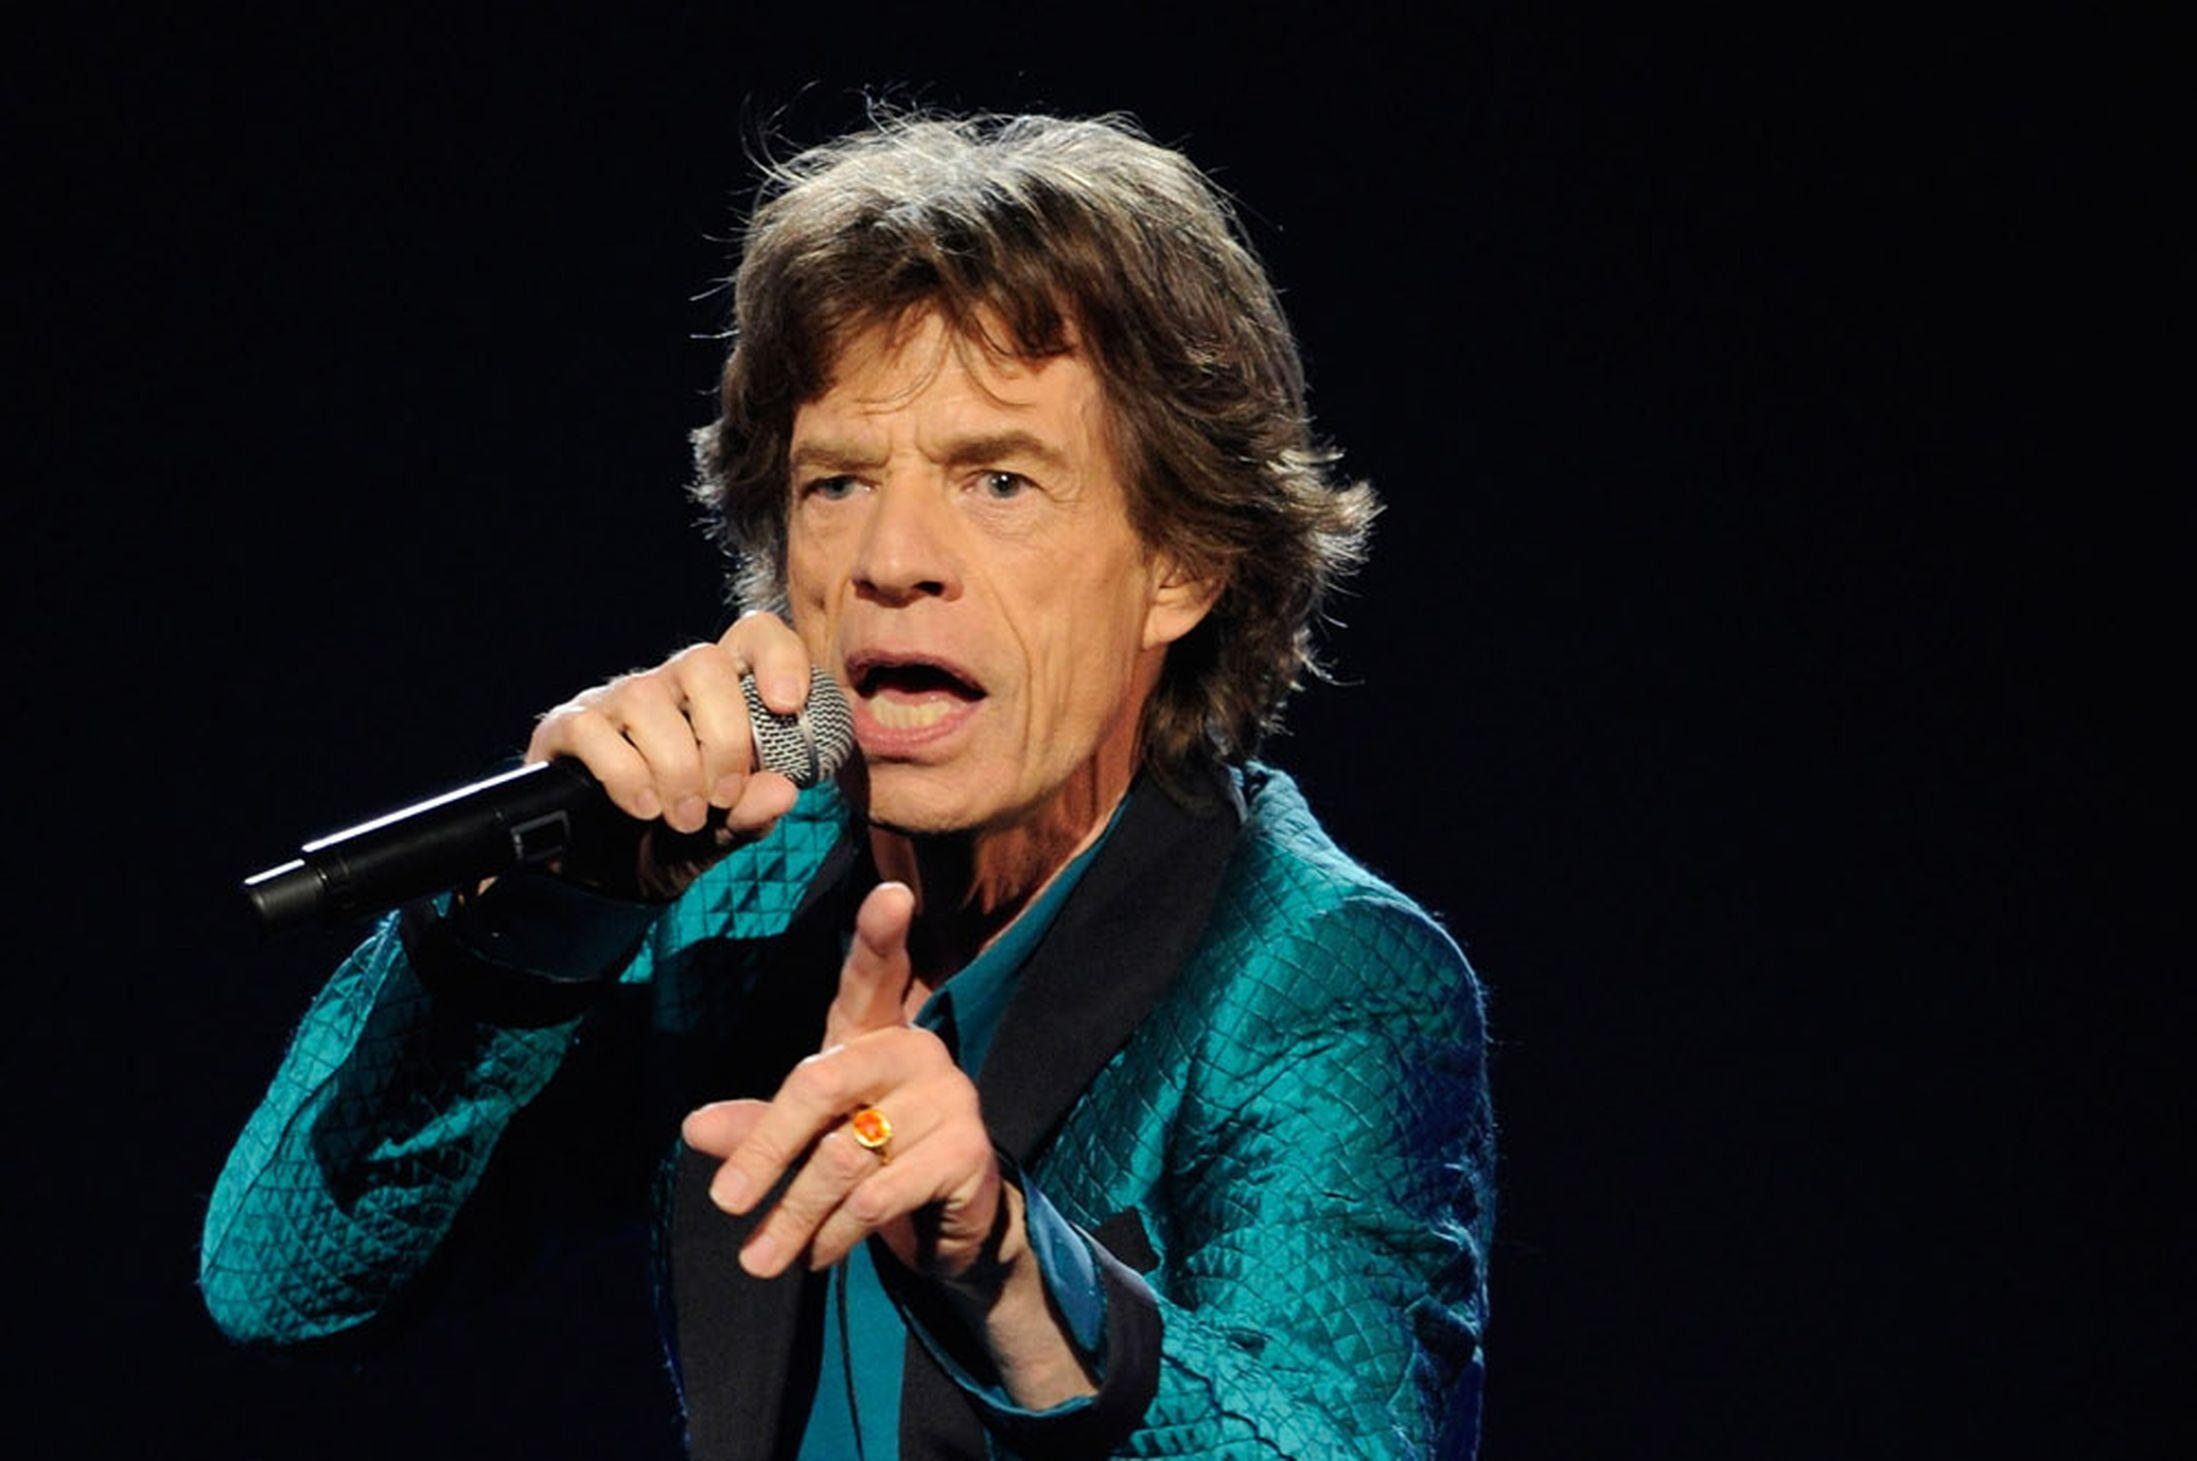 Mick Jagger 1 - Wallpapers AM